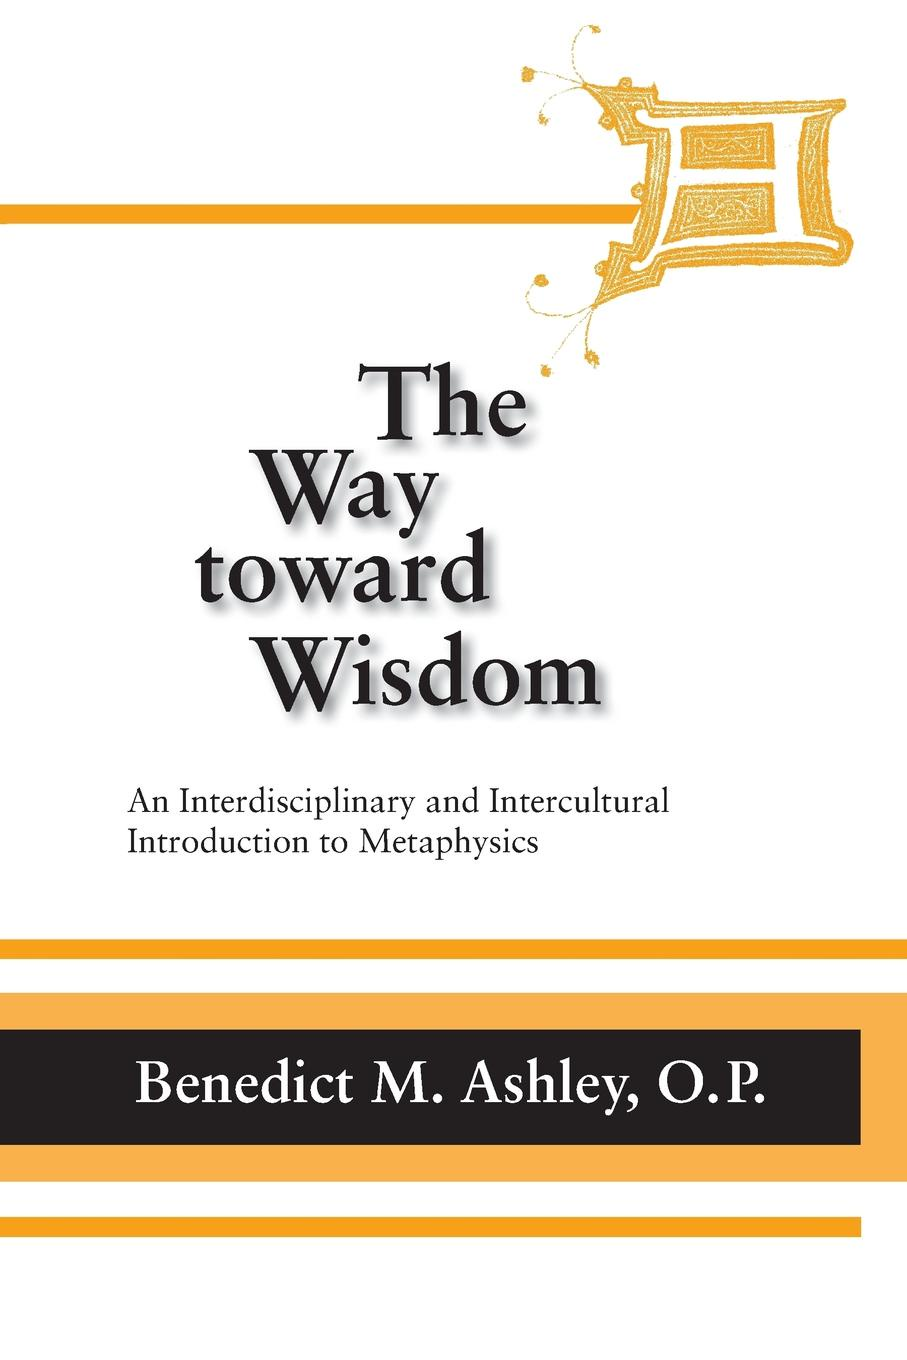 O.P. Benedict M. Ashley Way Toward Wisdom, The. An Interdisciplinary and Intercultural Introduction to Metaphysics stephen hetherington metaphysics and epistemology a guided anthology